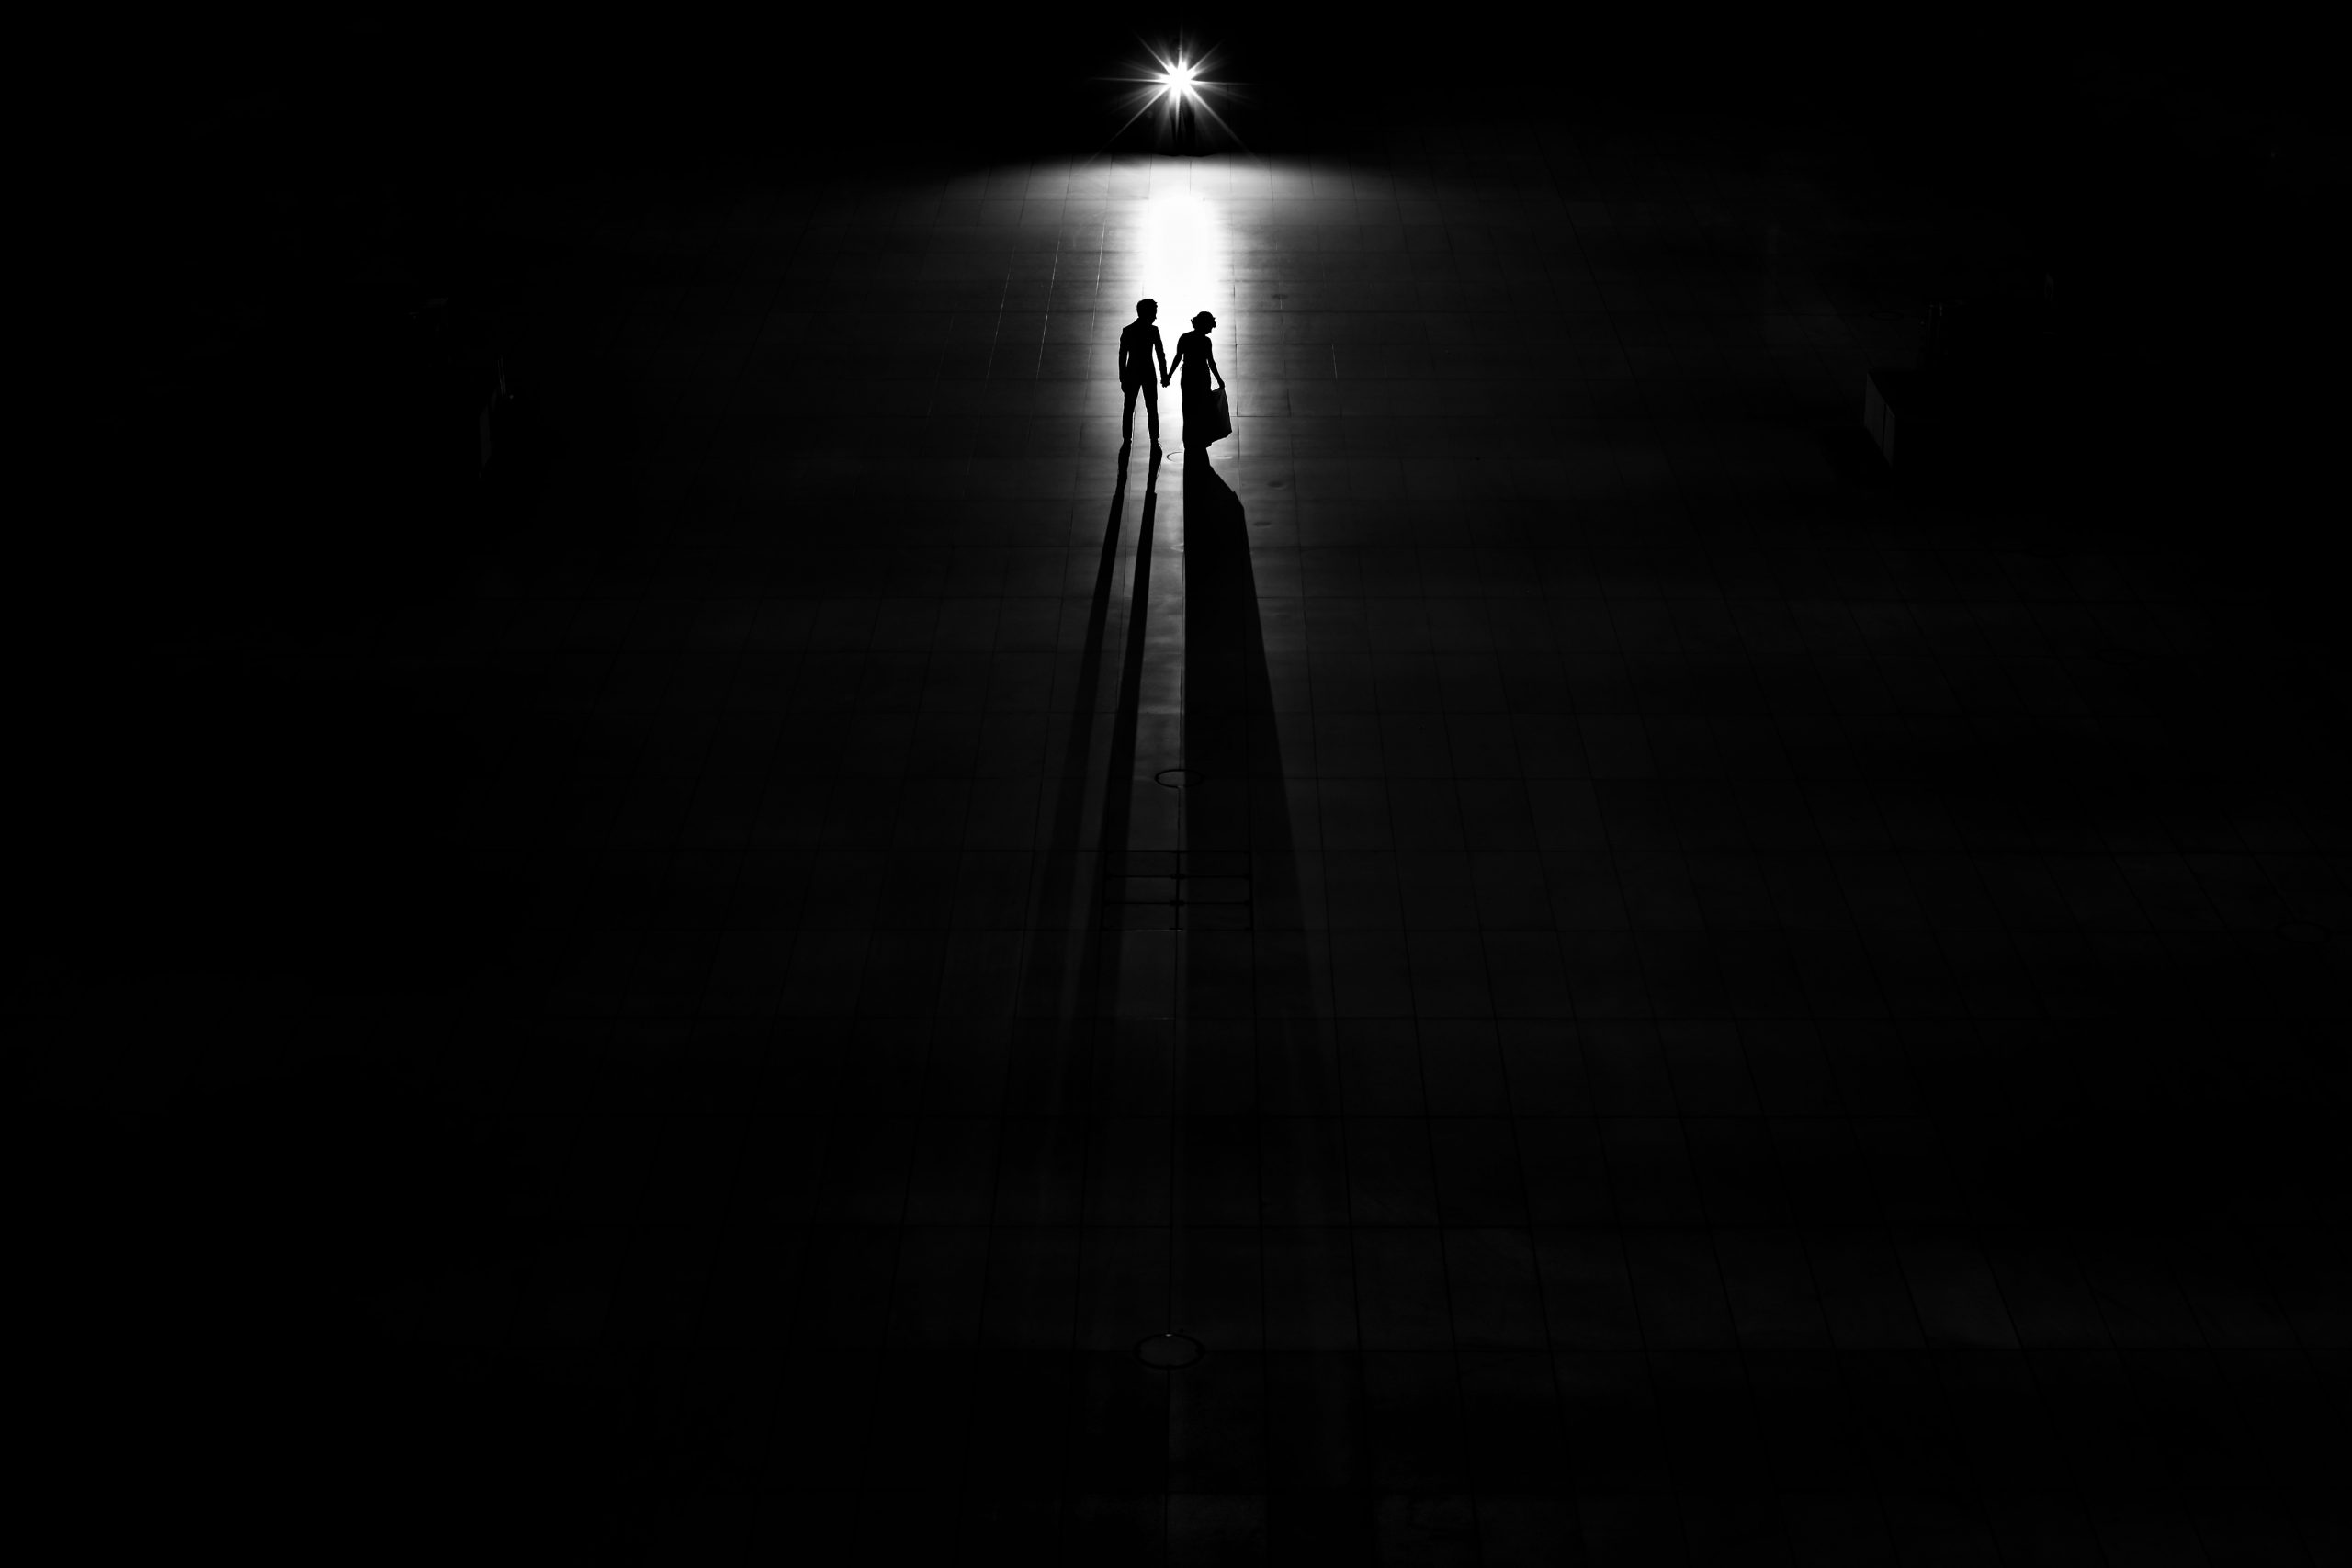 Bride and groom holding hands casts long shadow